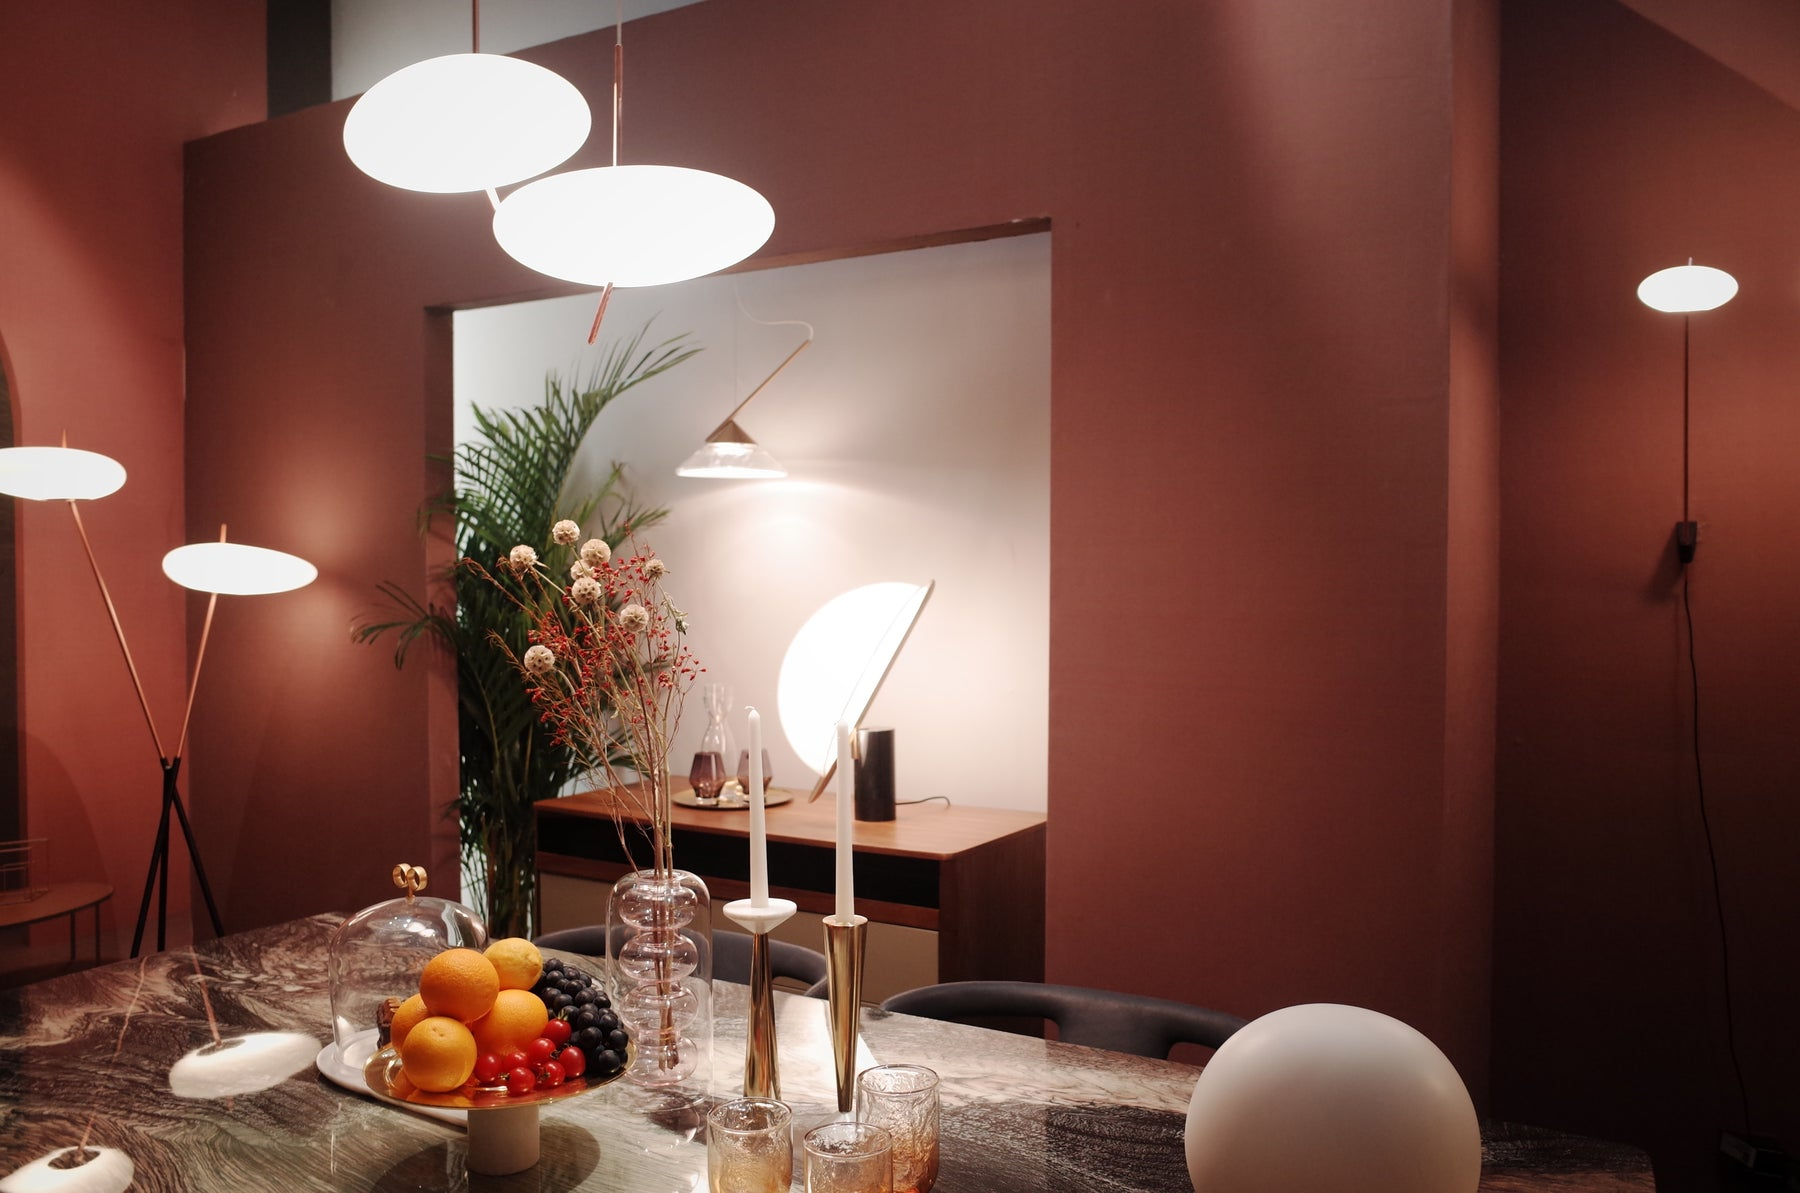 Uplift the temp of your space through Layered Lighting